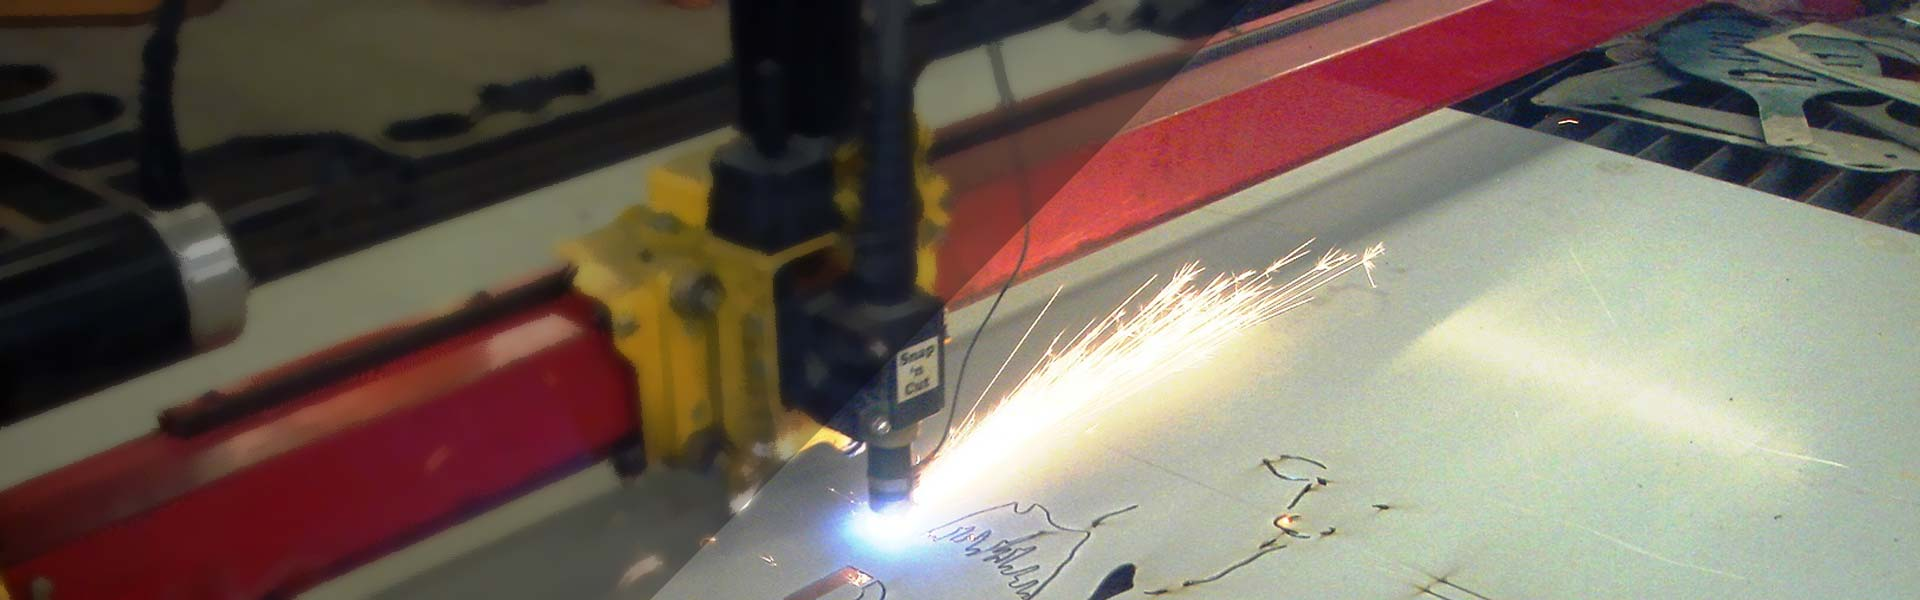 On our CNC, we can cut bespoke parts, but also can create art